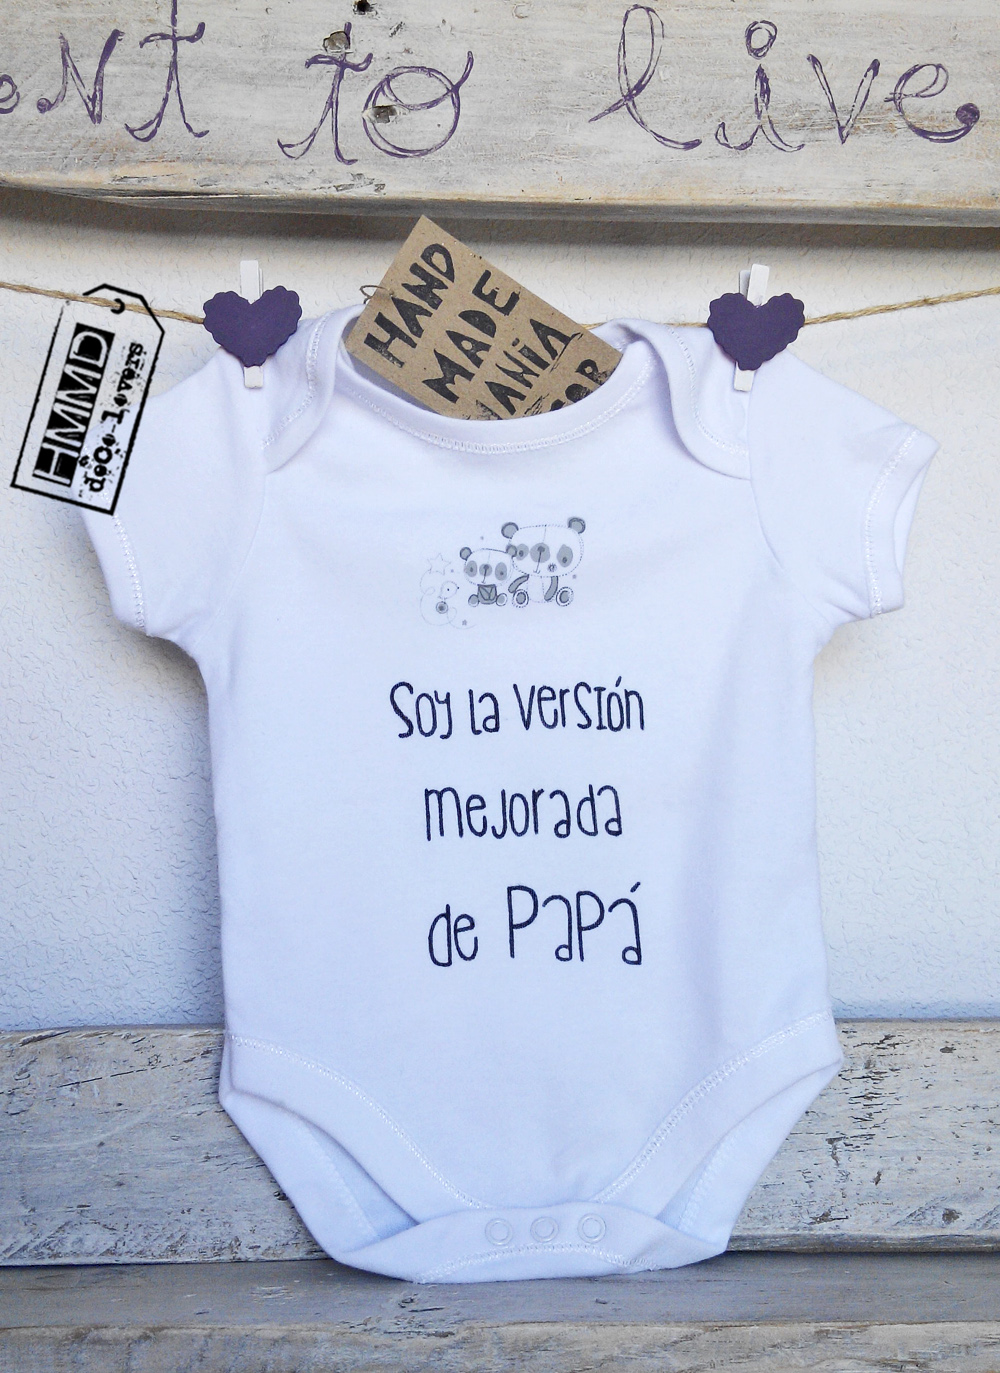 Soy la versión mejorada de papá. Body con frases para bebés HMMD Handmademaniadecor, regalo para el día de la madre, día del padre o para recién nacido. Baby body suits with phrases by HMMD, ideal for gifts.